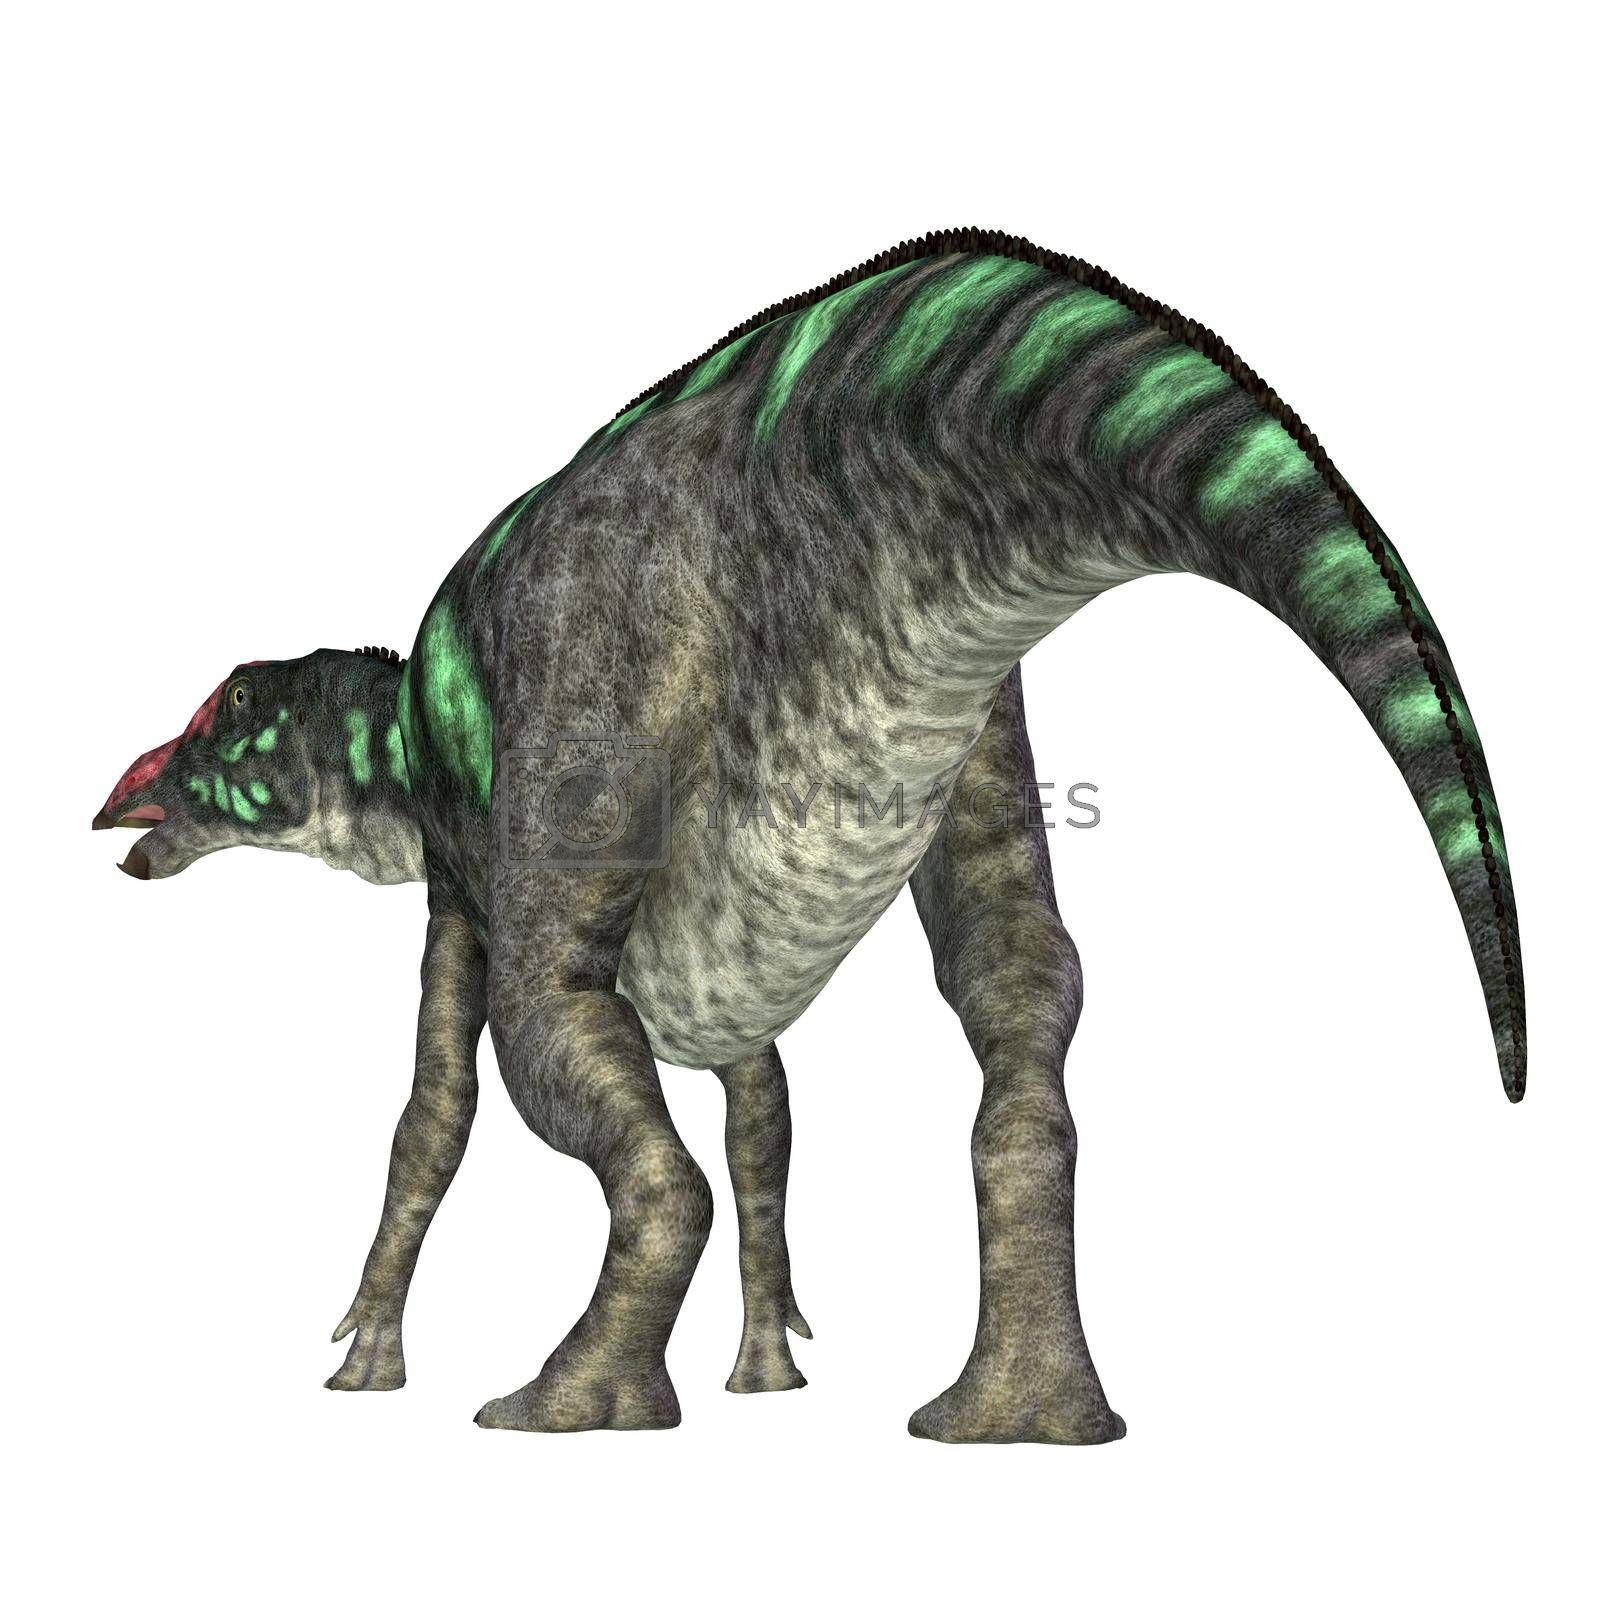 Maiasaura was a herbivorous duck-billed Hadrosaur dinosaur that lived in Montana during the Cretaceous Period.